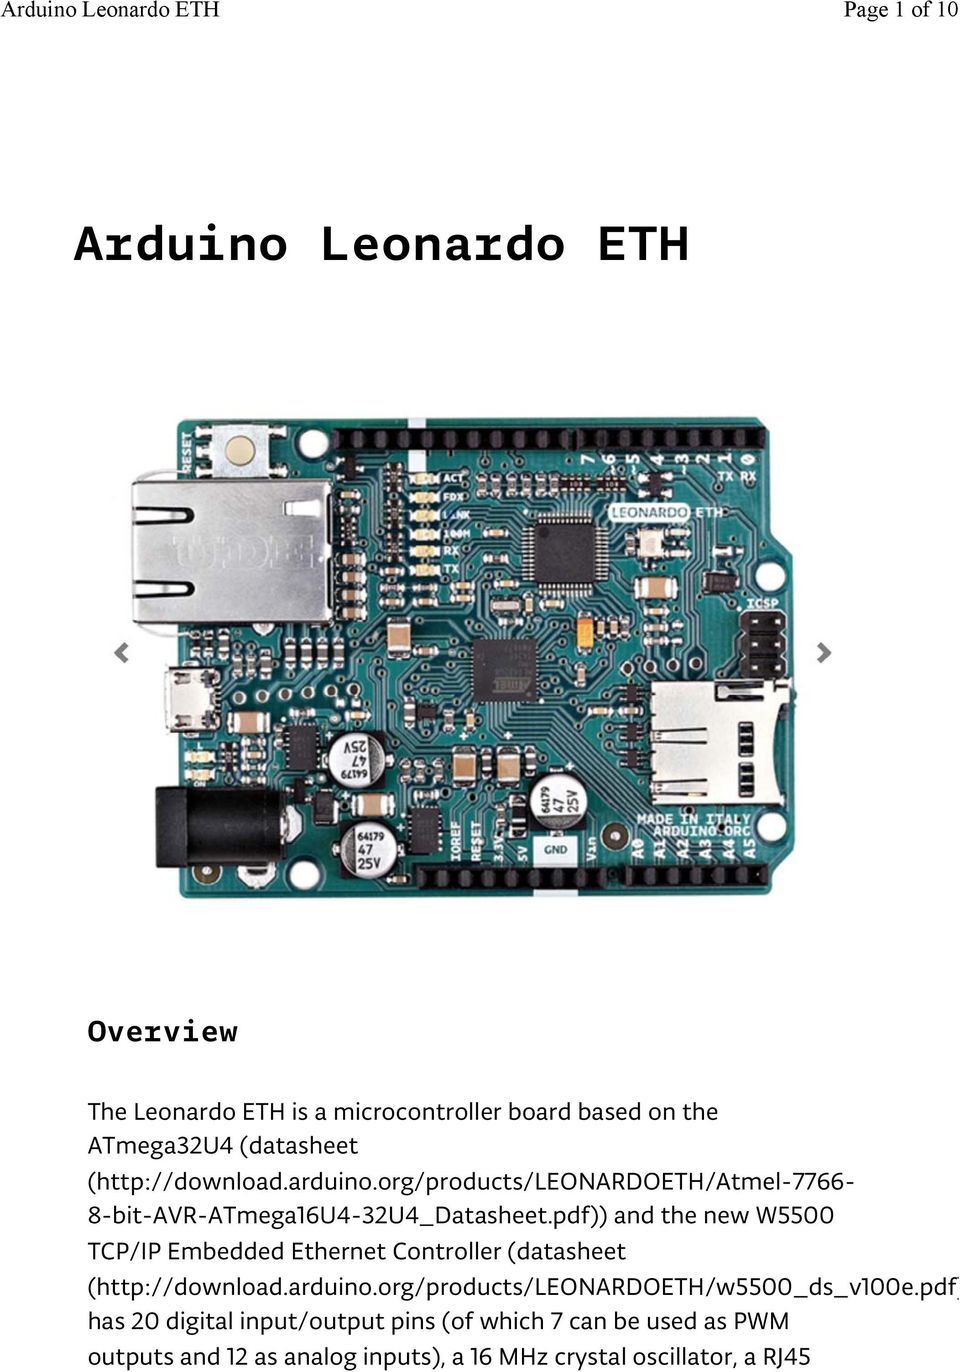 pdf)) and the new W5500 TCP/IP Embedded Ethernet Controller (datasheet (http://download.arduino.